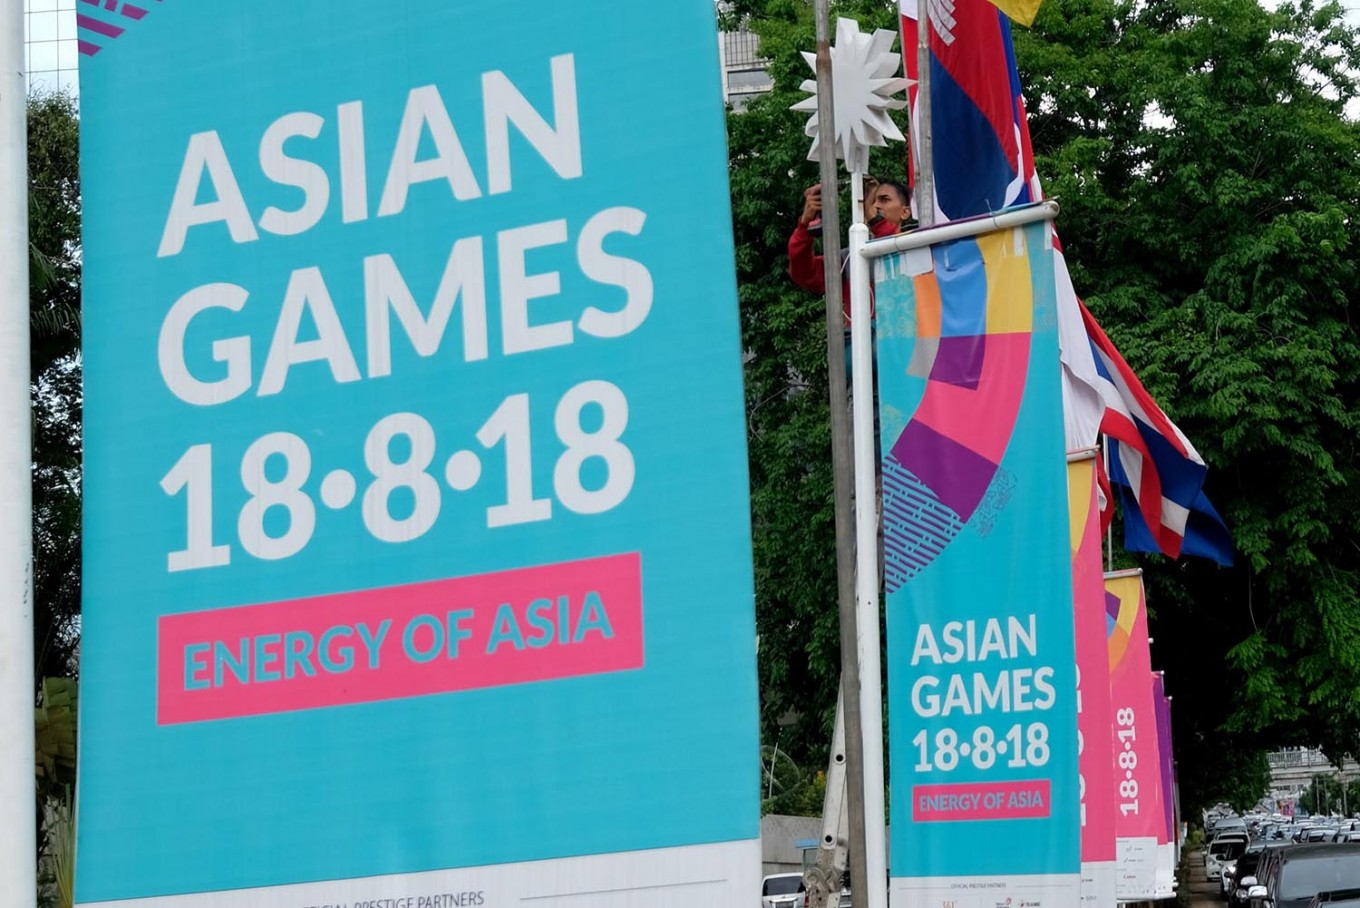 Jakarta agency scouts malls, buildings for Asian Games parking lots